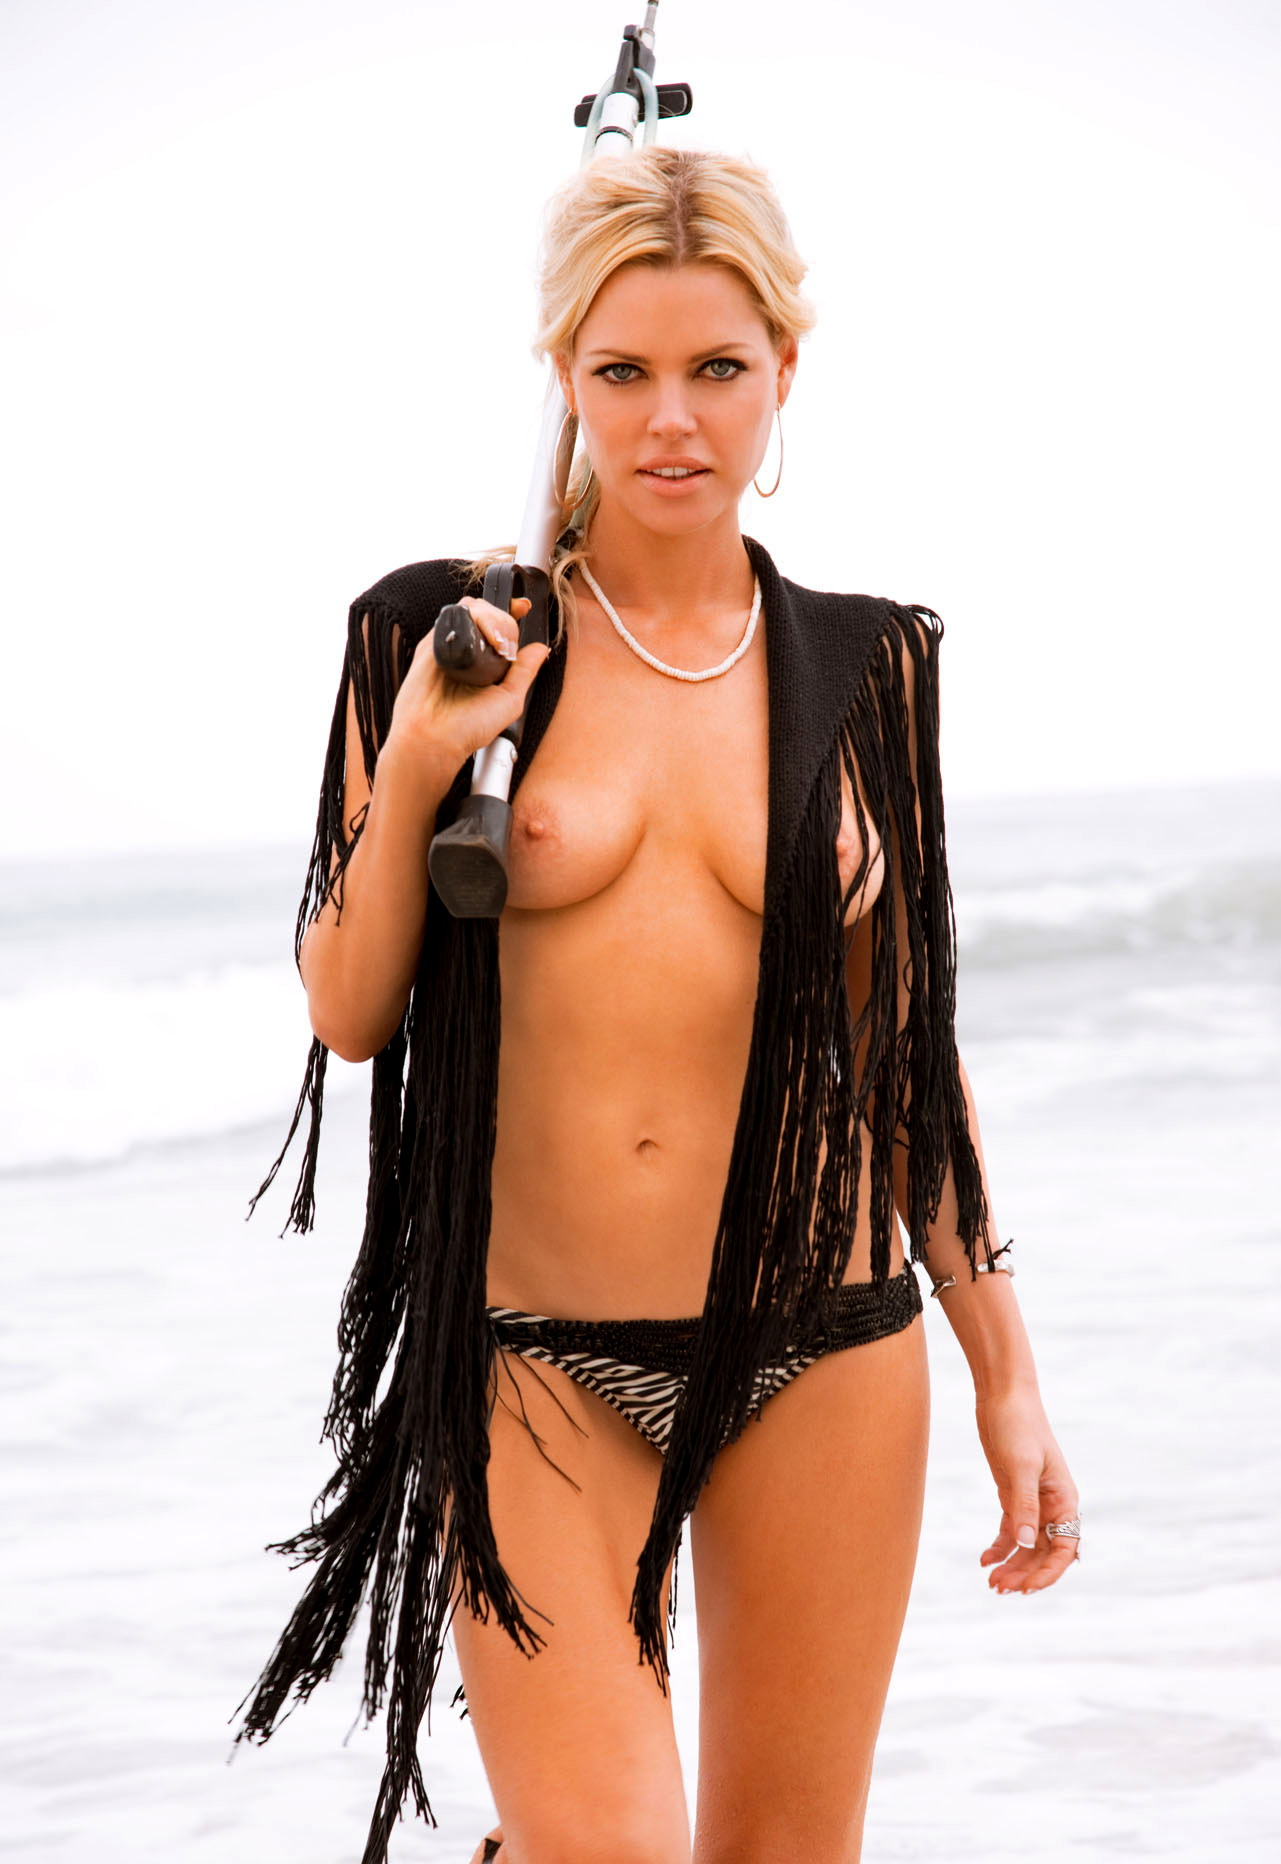 sophie monk showing off her big boobs and shaved pussy in